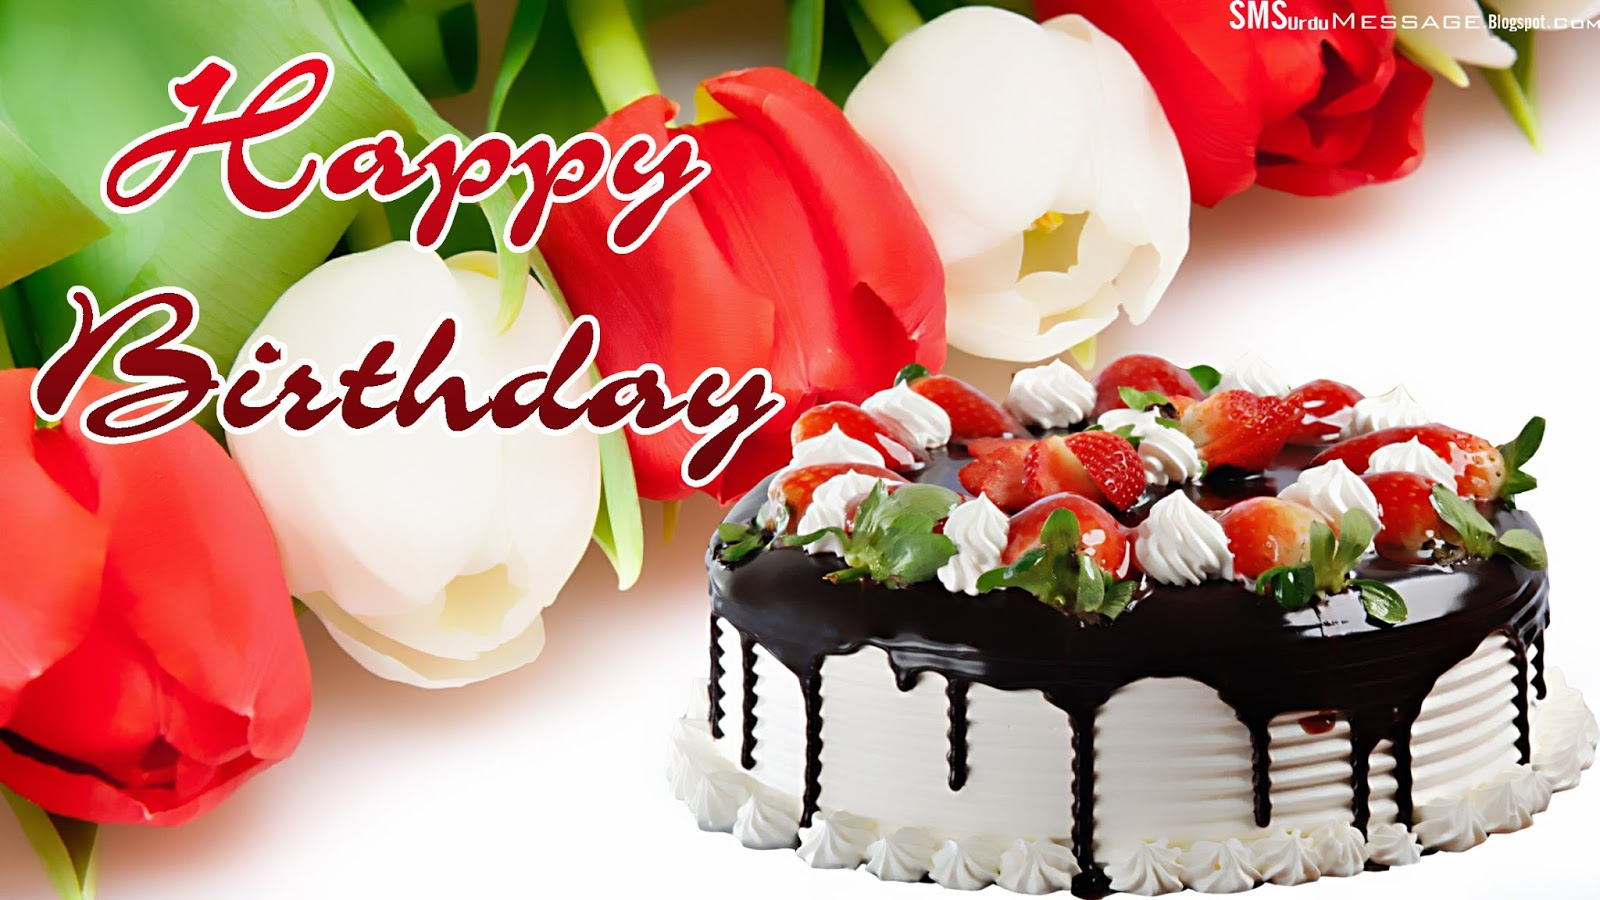 5000 happy birthday wishes birthday images birthday messages happy birthday pictures voltagebd Gallery